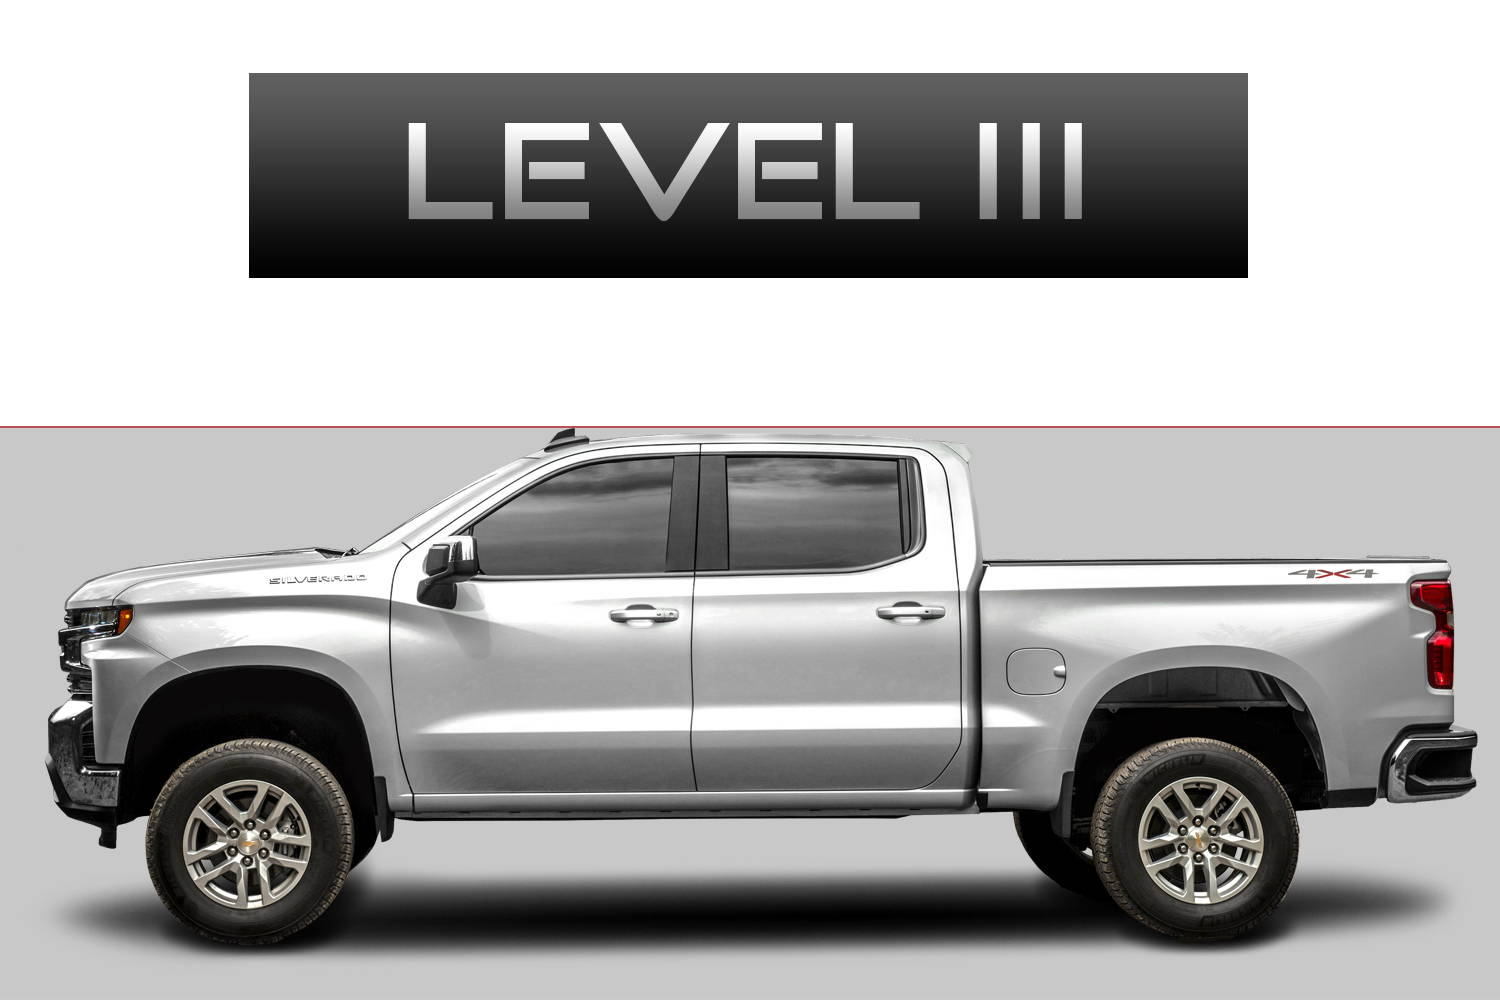 Chevrolet Silverado 1500 Off-Road Customizing Package Level 3 by 3C Trucks